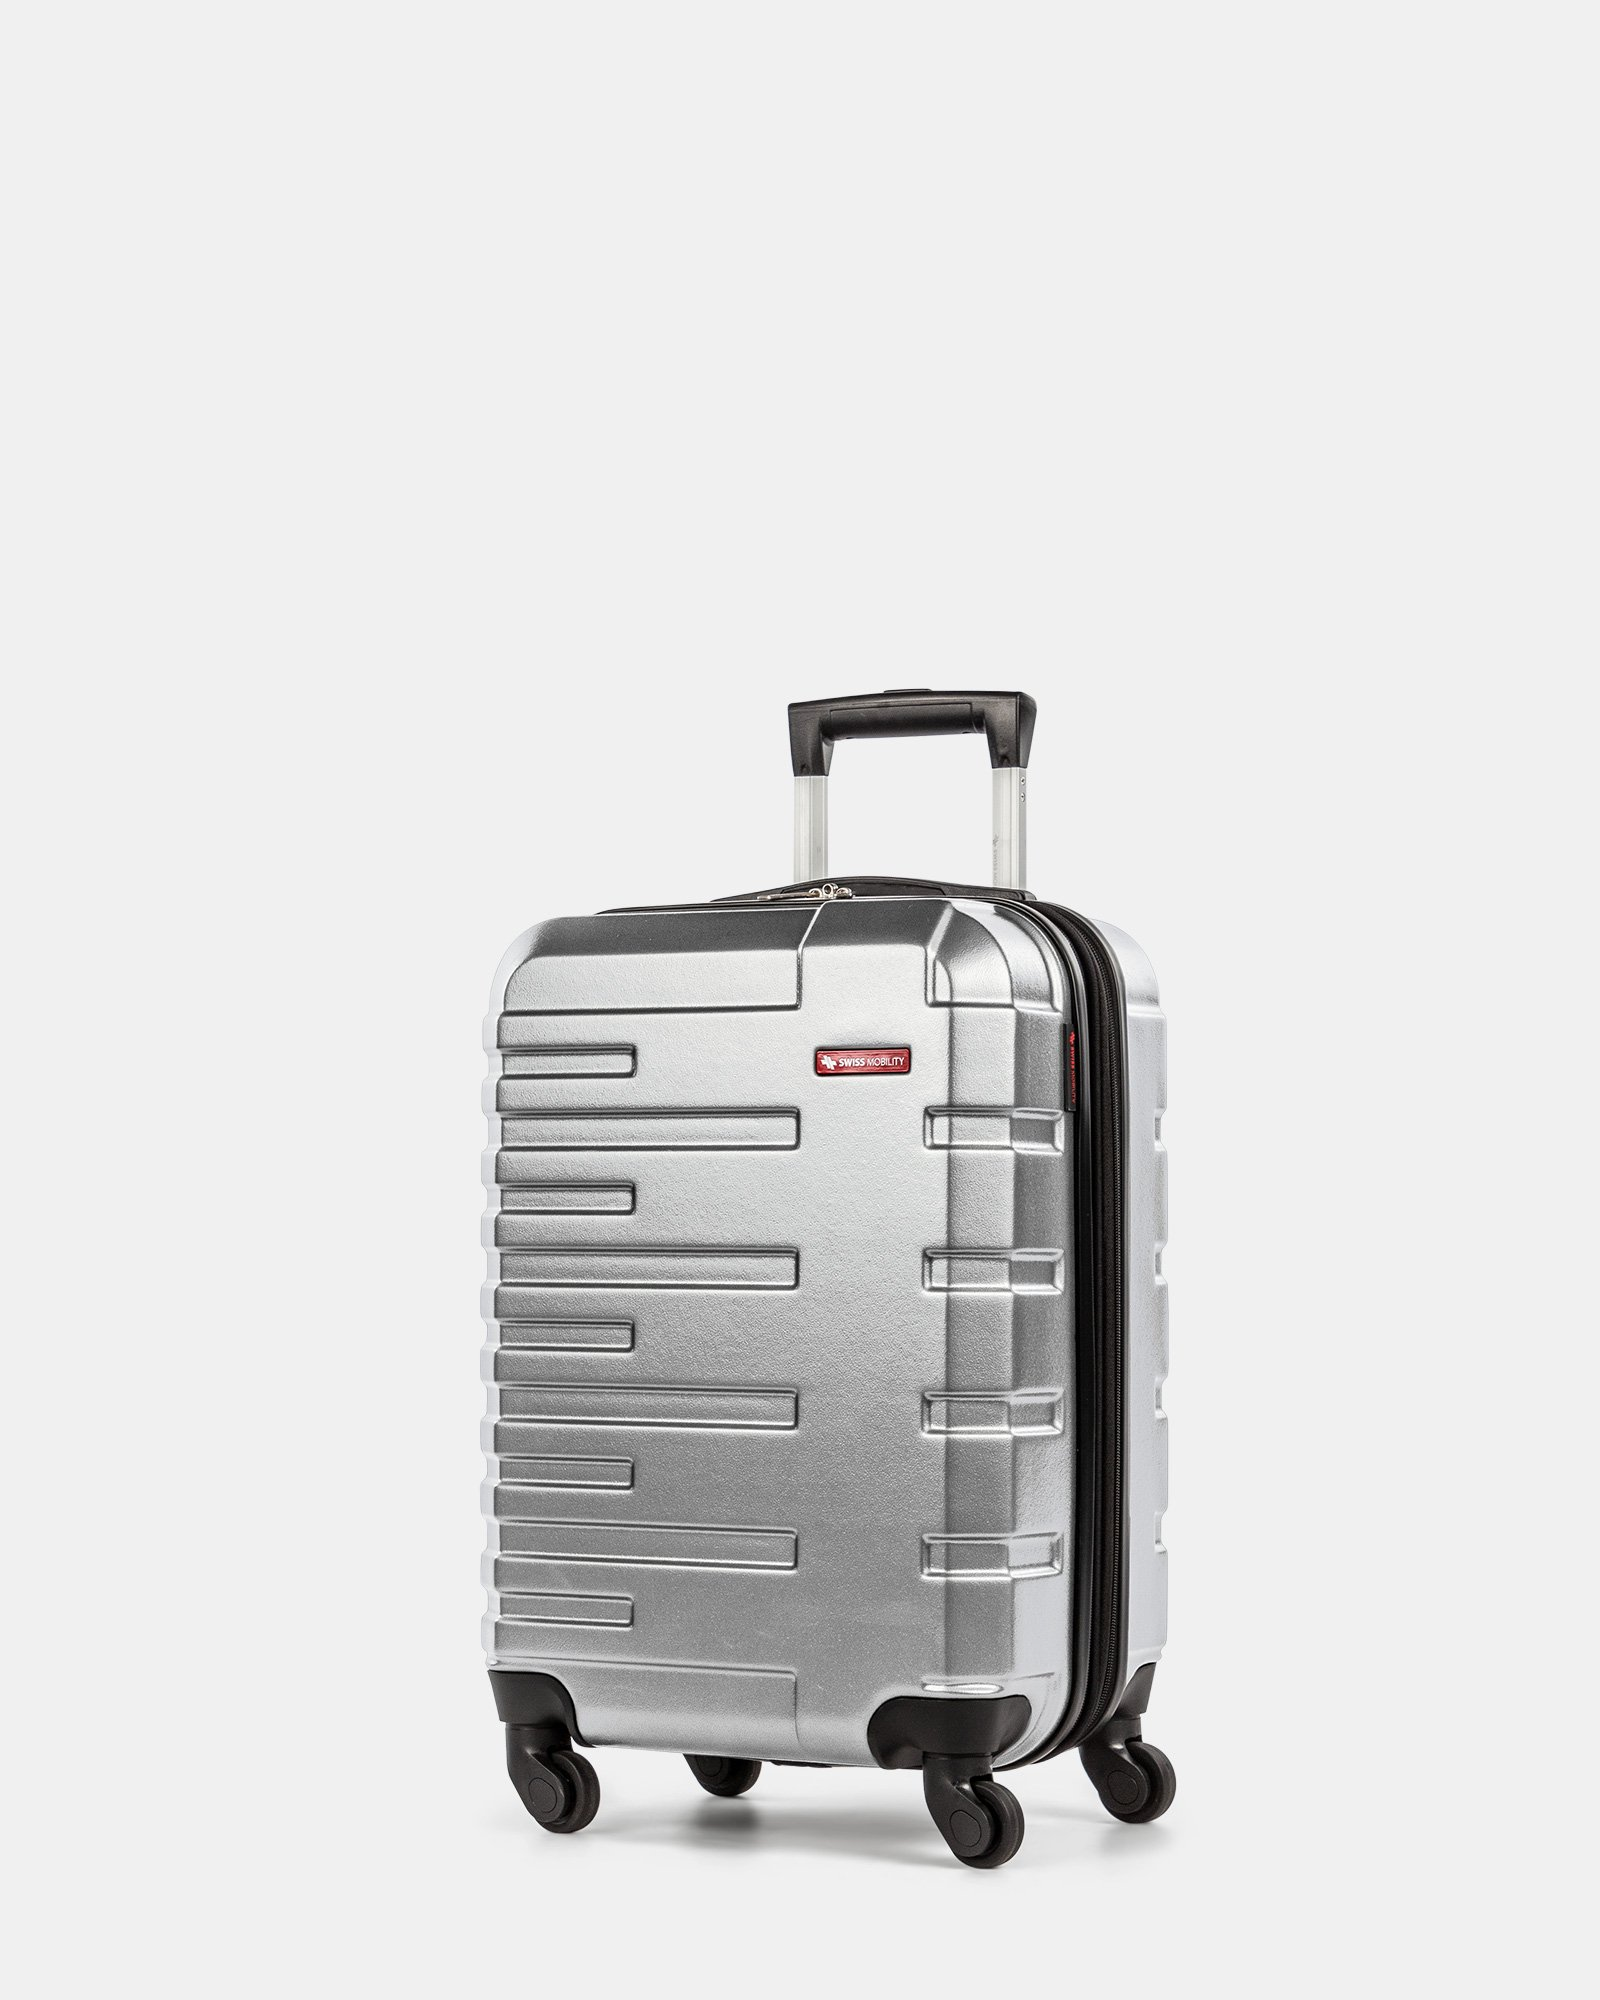 Quad - Hardside Carry on - Swiss Mobility - Zoom